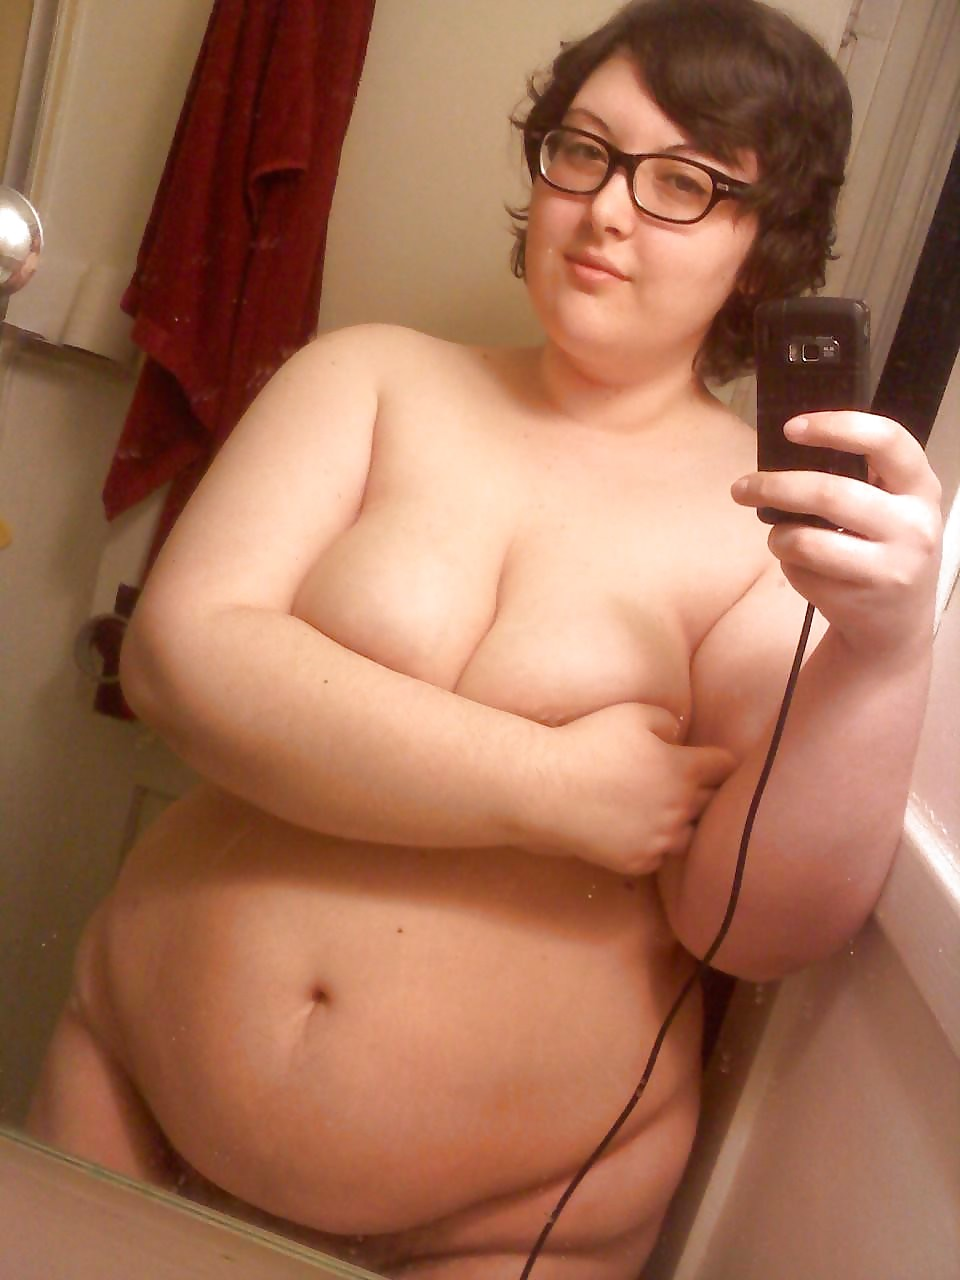 Chubby big tit cell phone self shot nudes